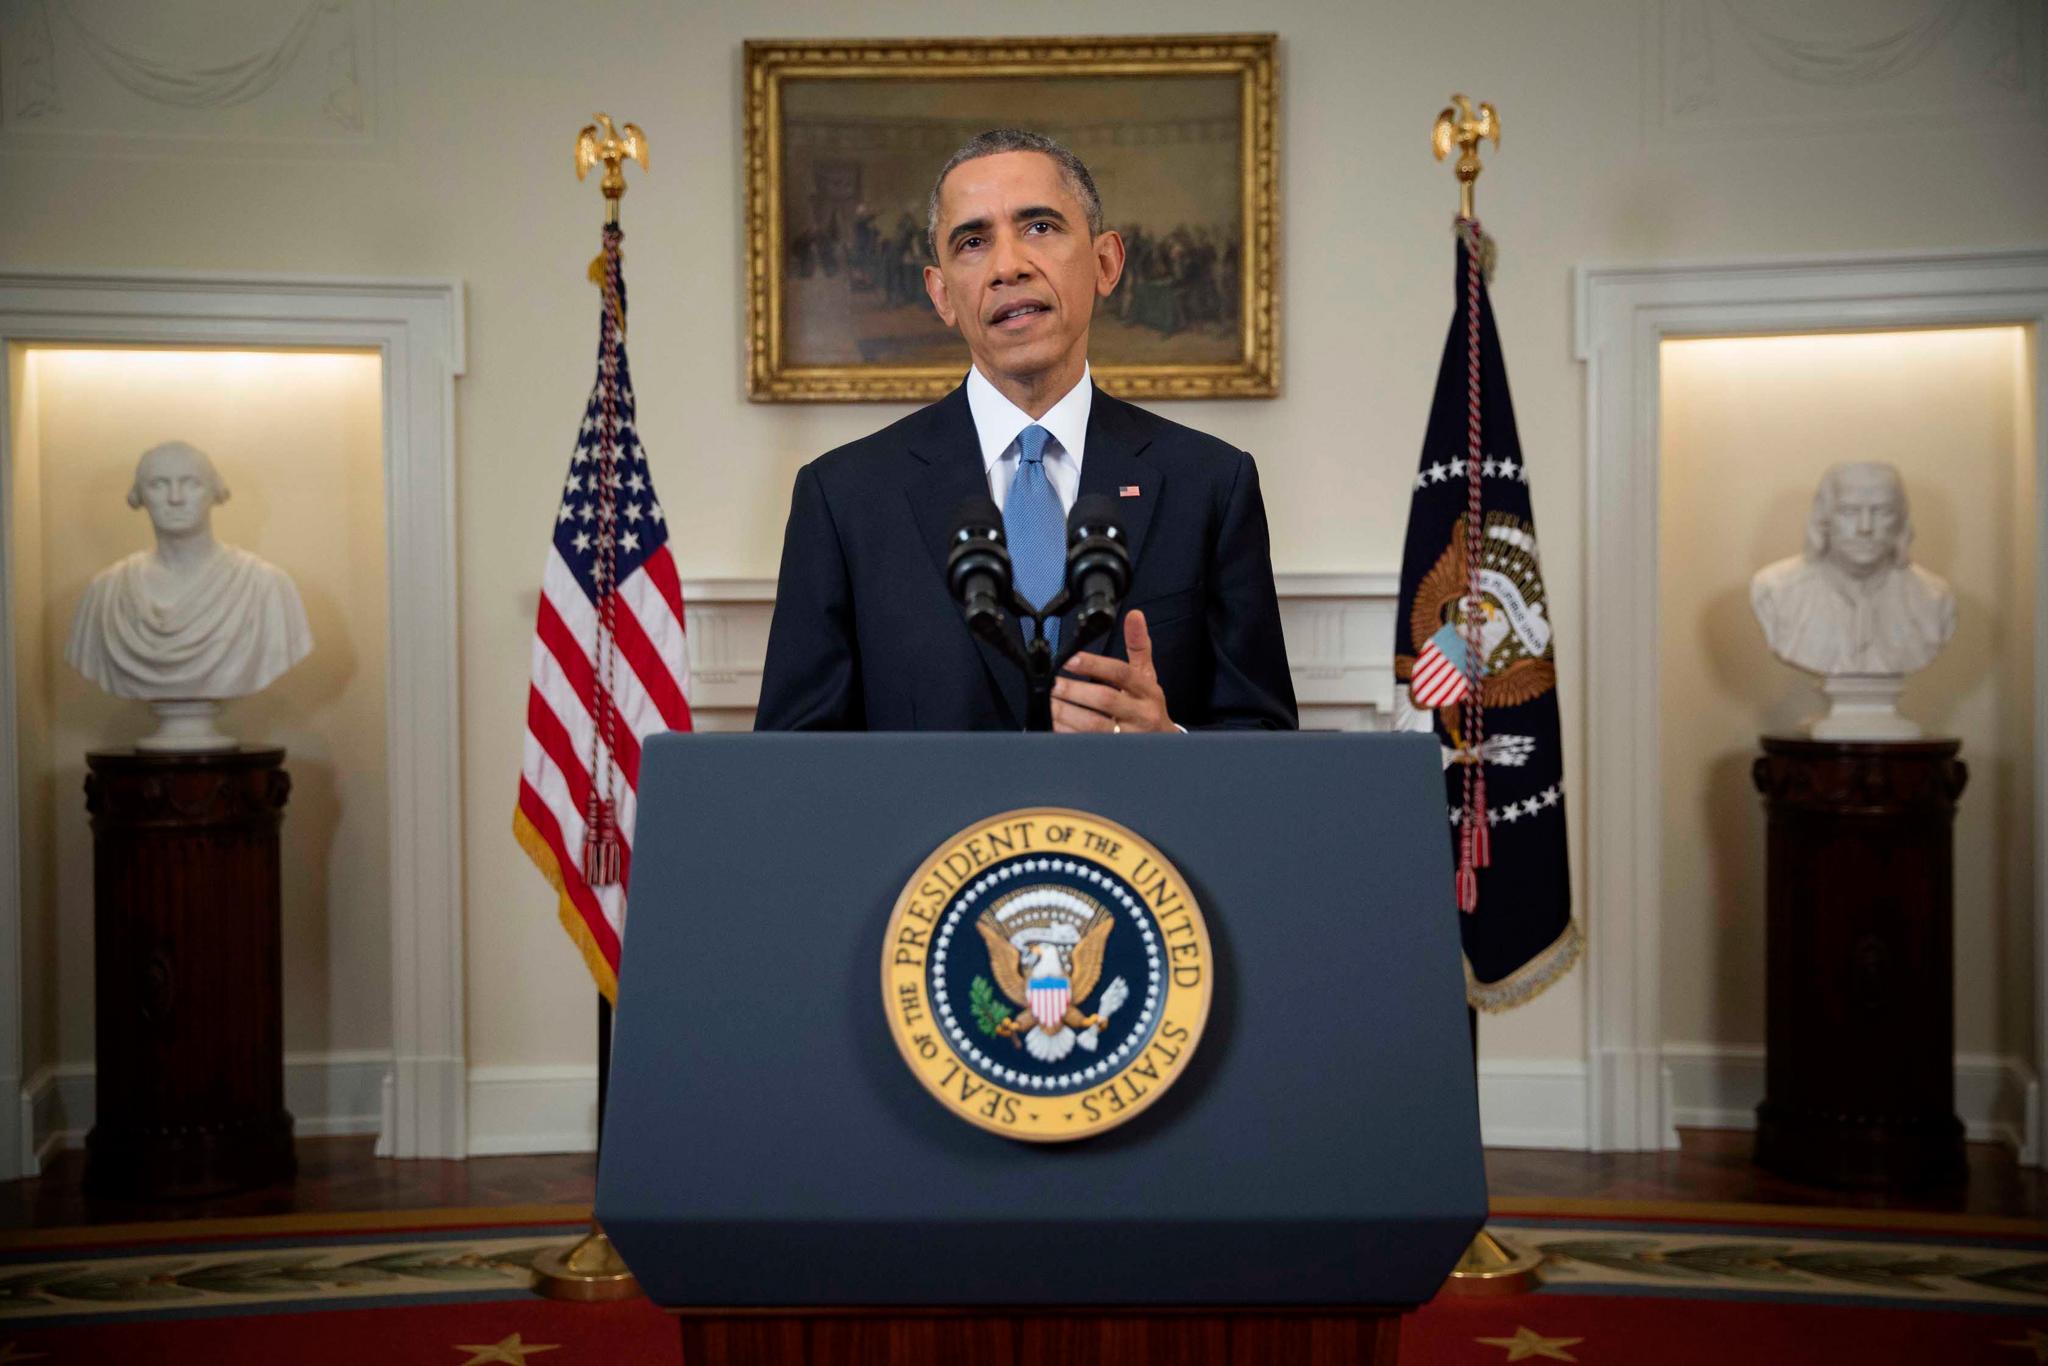 President Obama Announces Plans to Improve Relationship With Cuba